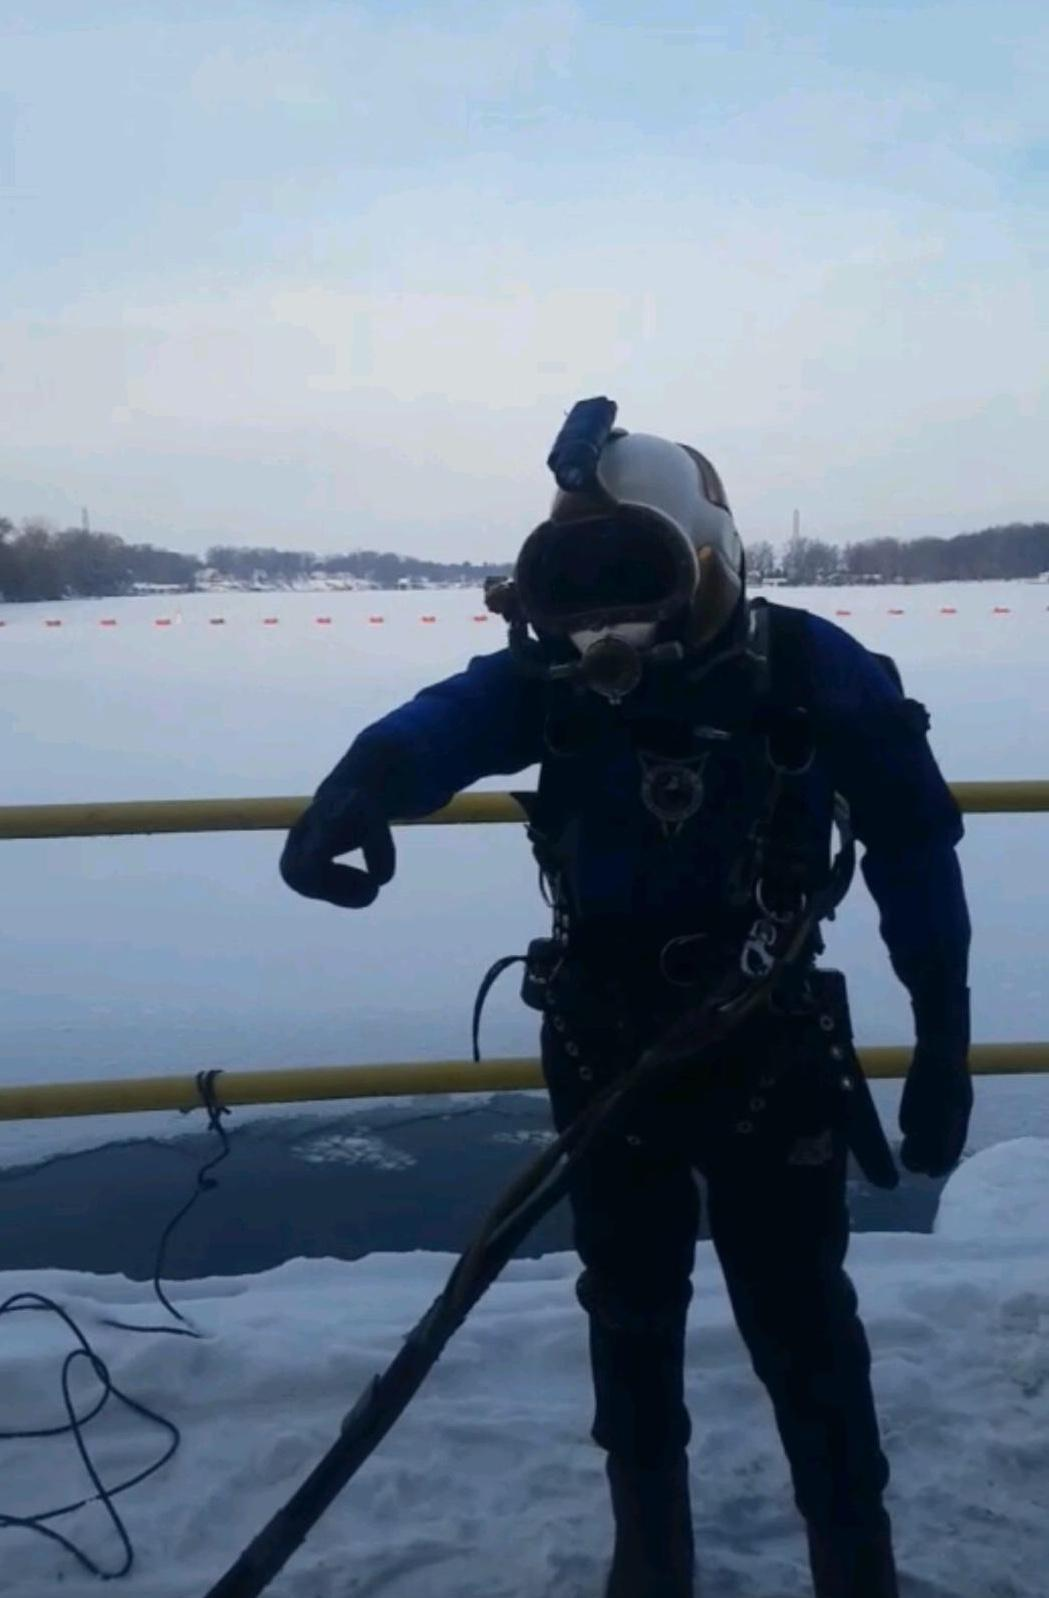 Lindahl Marine performs work even in the most inclement weather